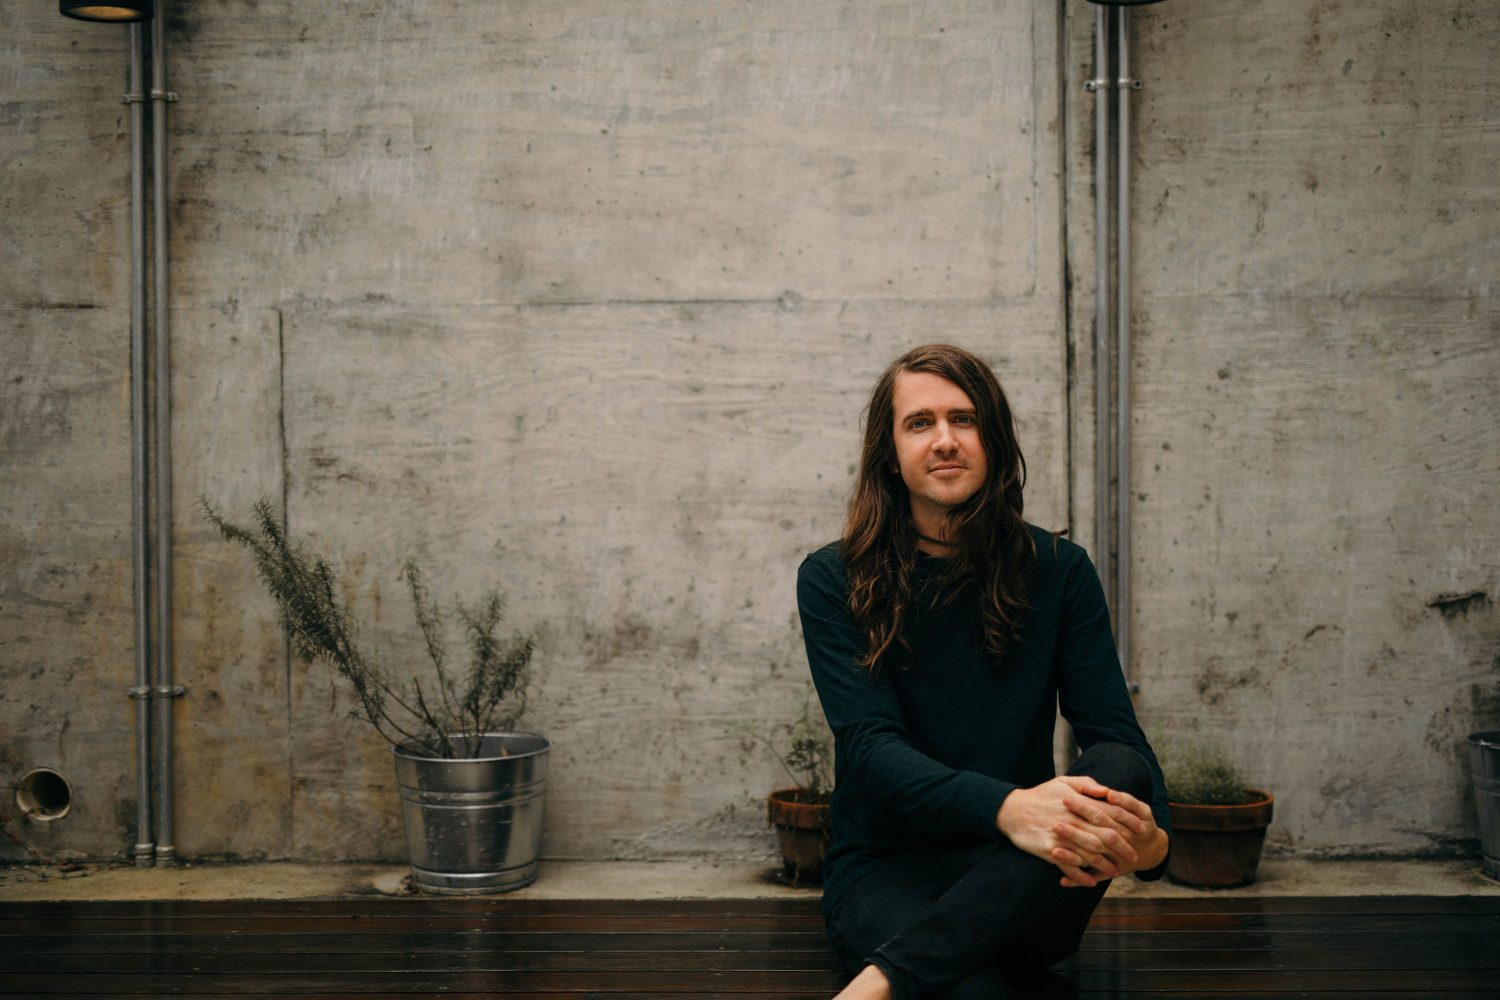 Derek Sanders revisits and retools songs he holds dear on 'My Rock and Roll Heart'